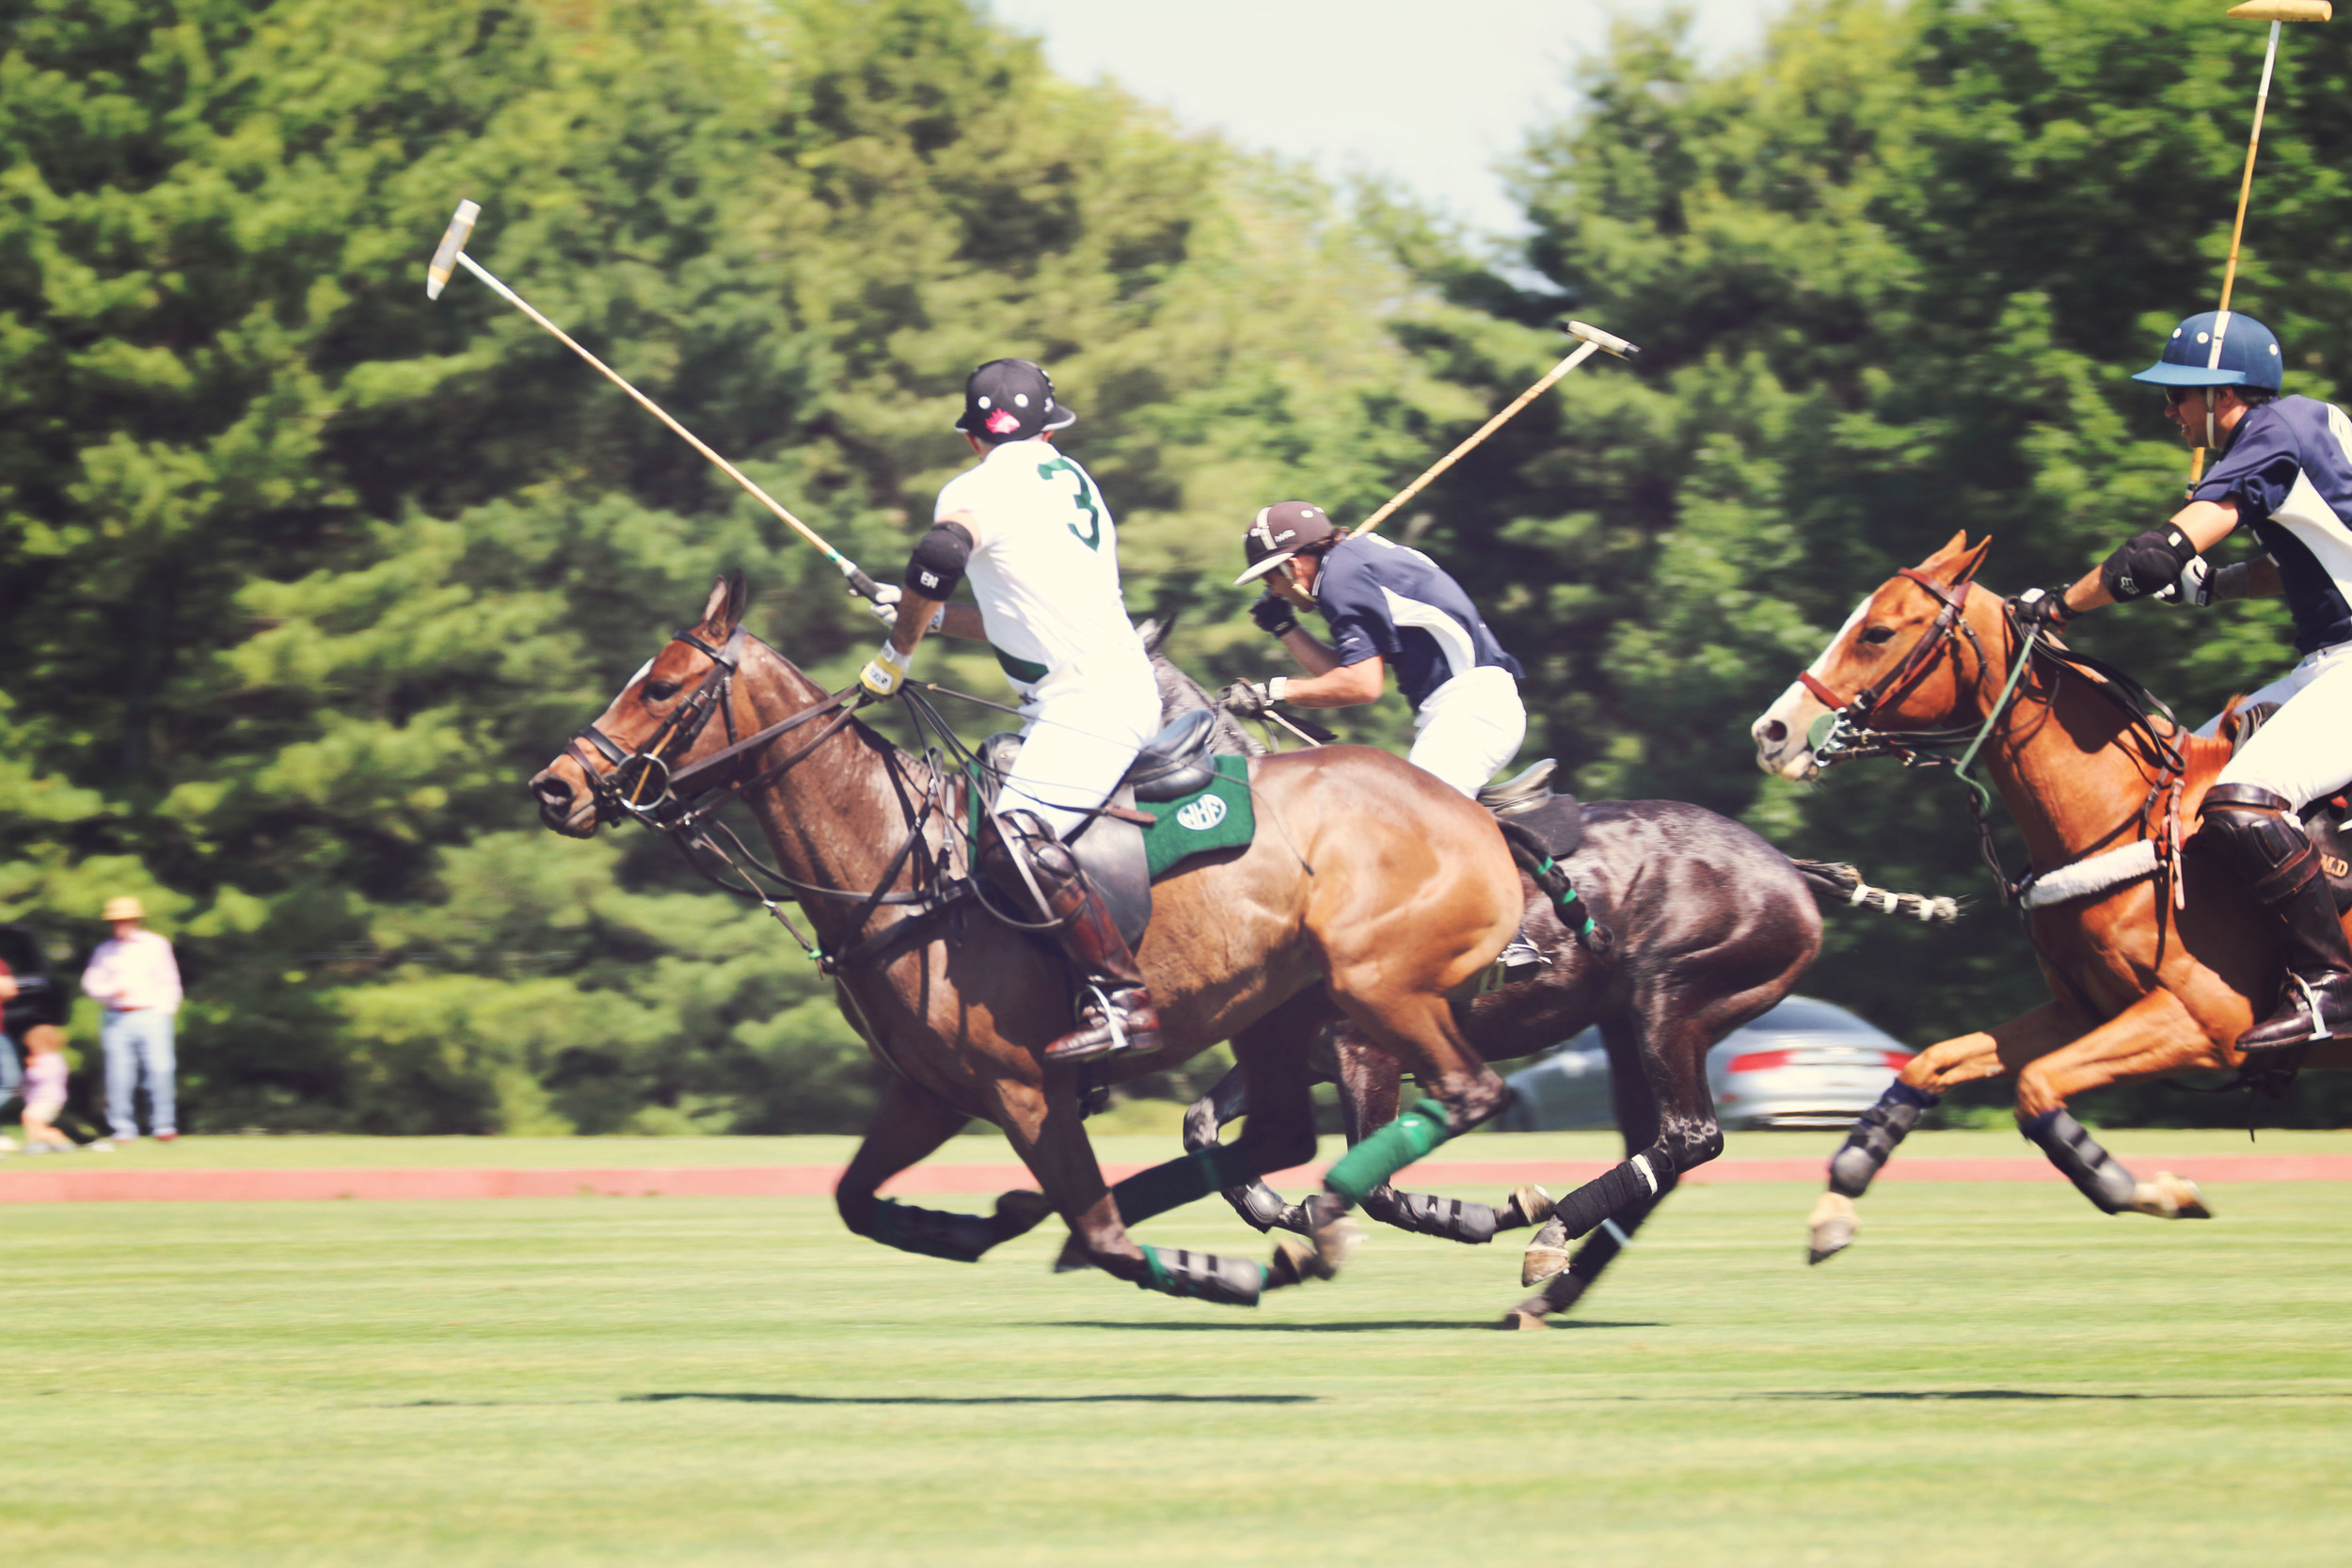 Photo taken last weekend at the Greenwich Polo Club